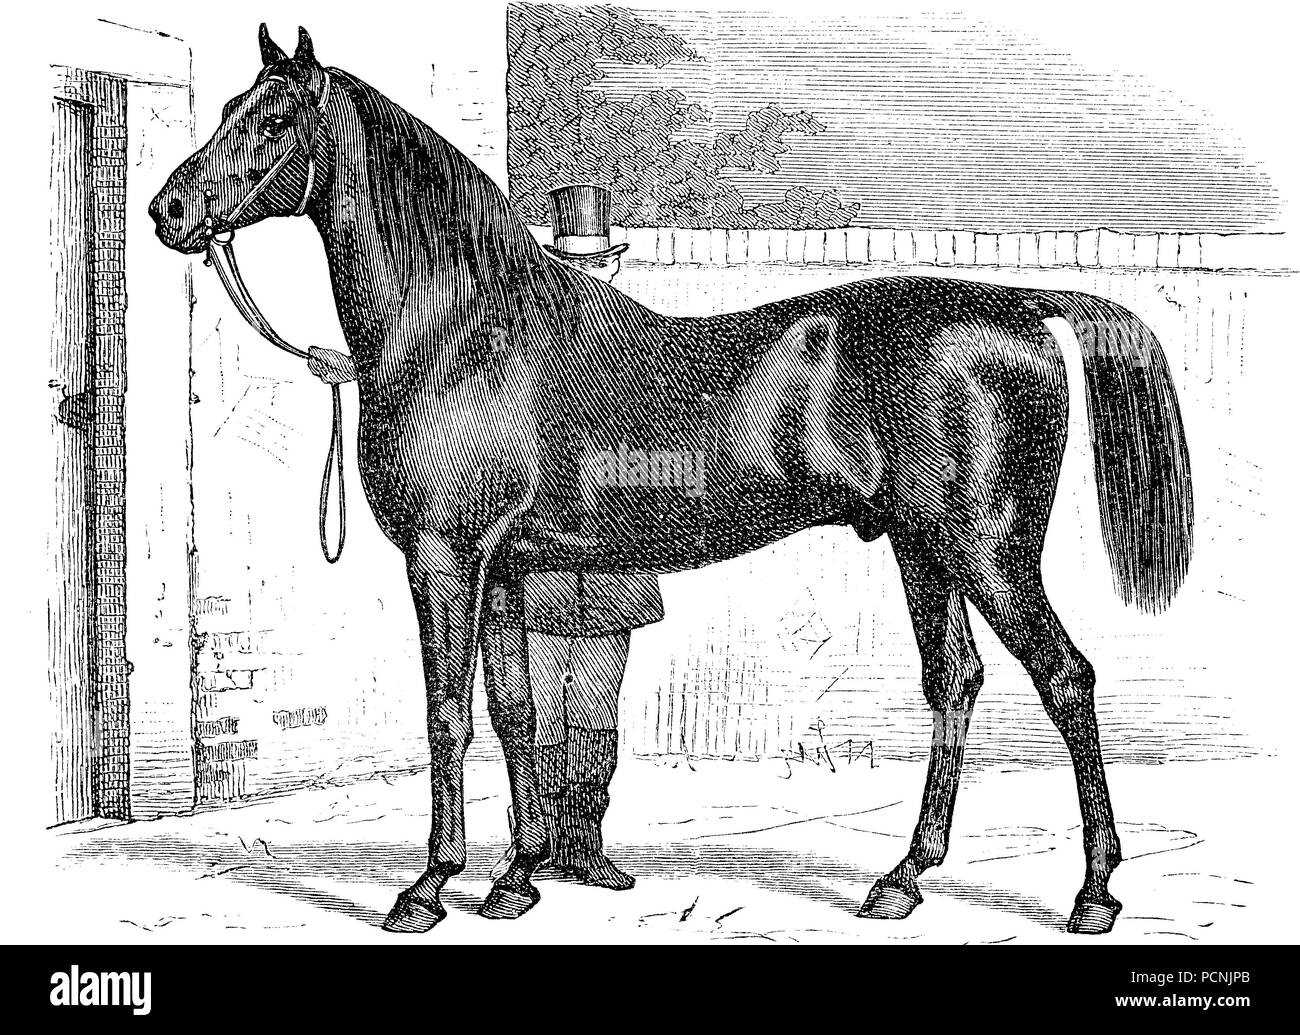 horse breed, Trakehner, digital improved reproduction of an historical image from the year 1885 - Stock Image